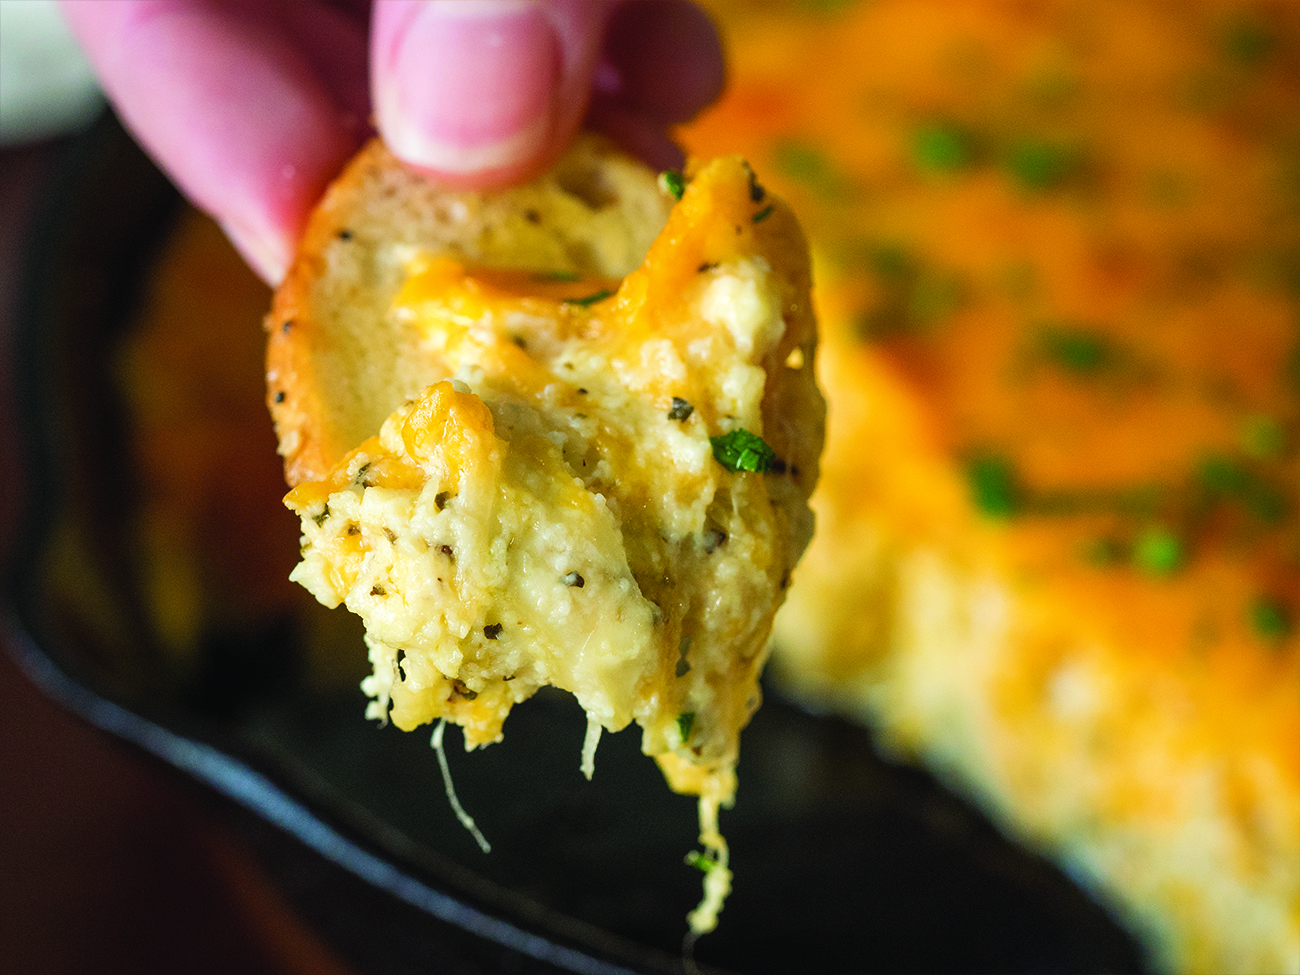 Cheesy Garlic Dip Horizontal 5